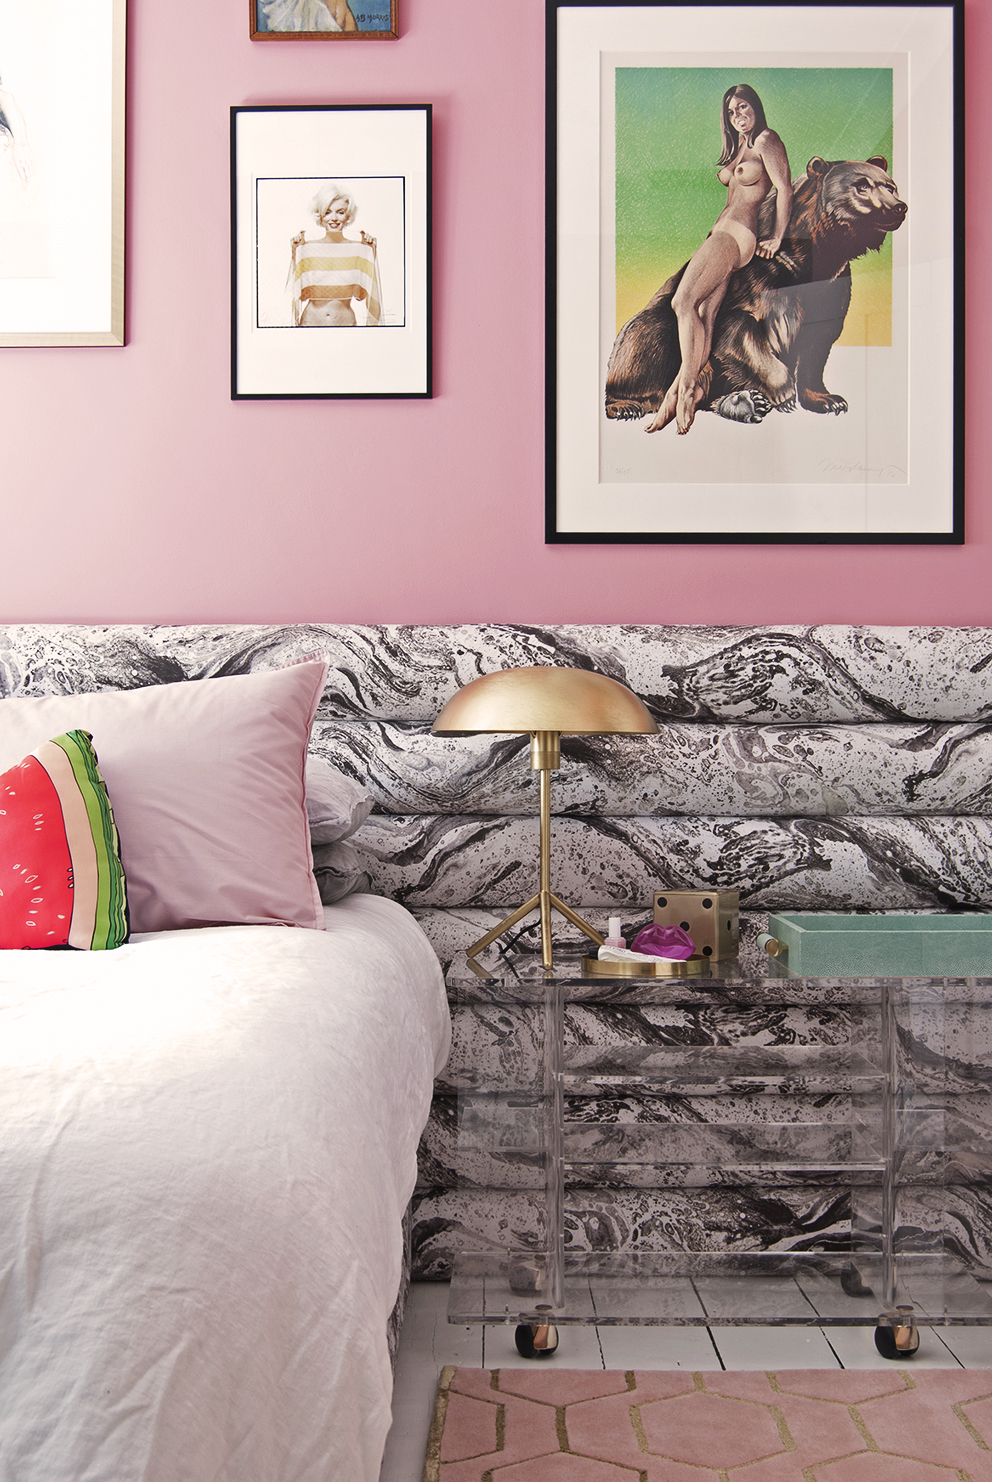 Amara Shoppable Home Inspiration Pages - French For Pineapple Blog - pink walls, dulux pink nevada 3, pink pillows, watermelon cushion, lucite nightstand, brass lamp